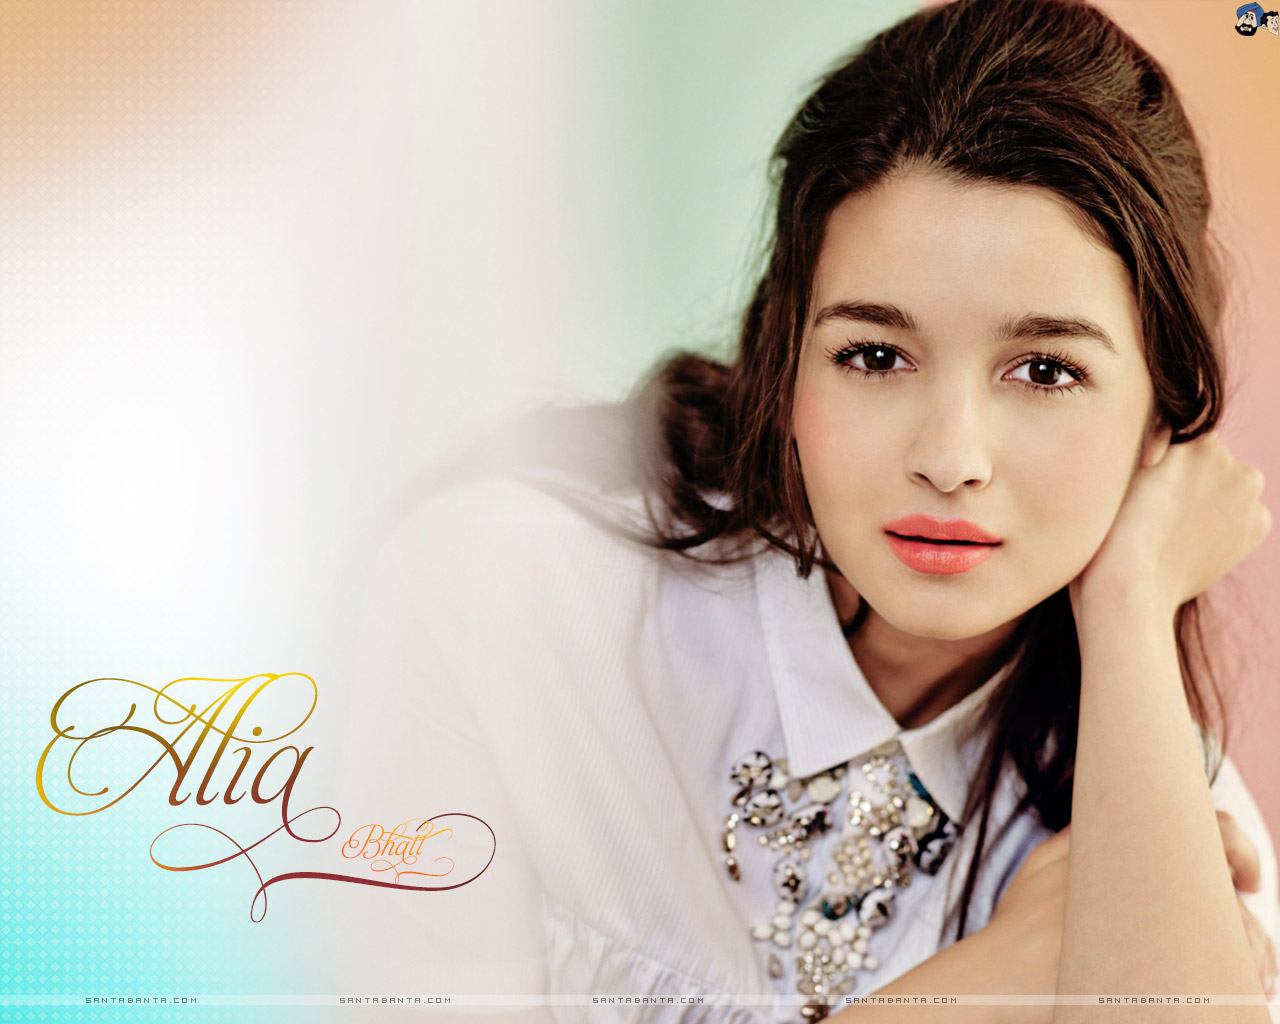 Alia Bhat Latest Wallpaper: HD Wallpaper Images Collection Of Alia Bhatt HQ